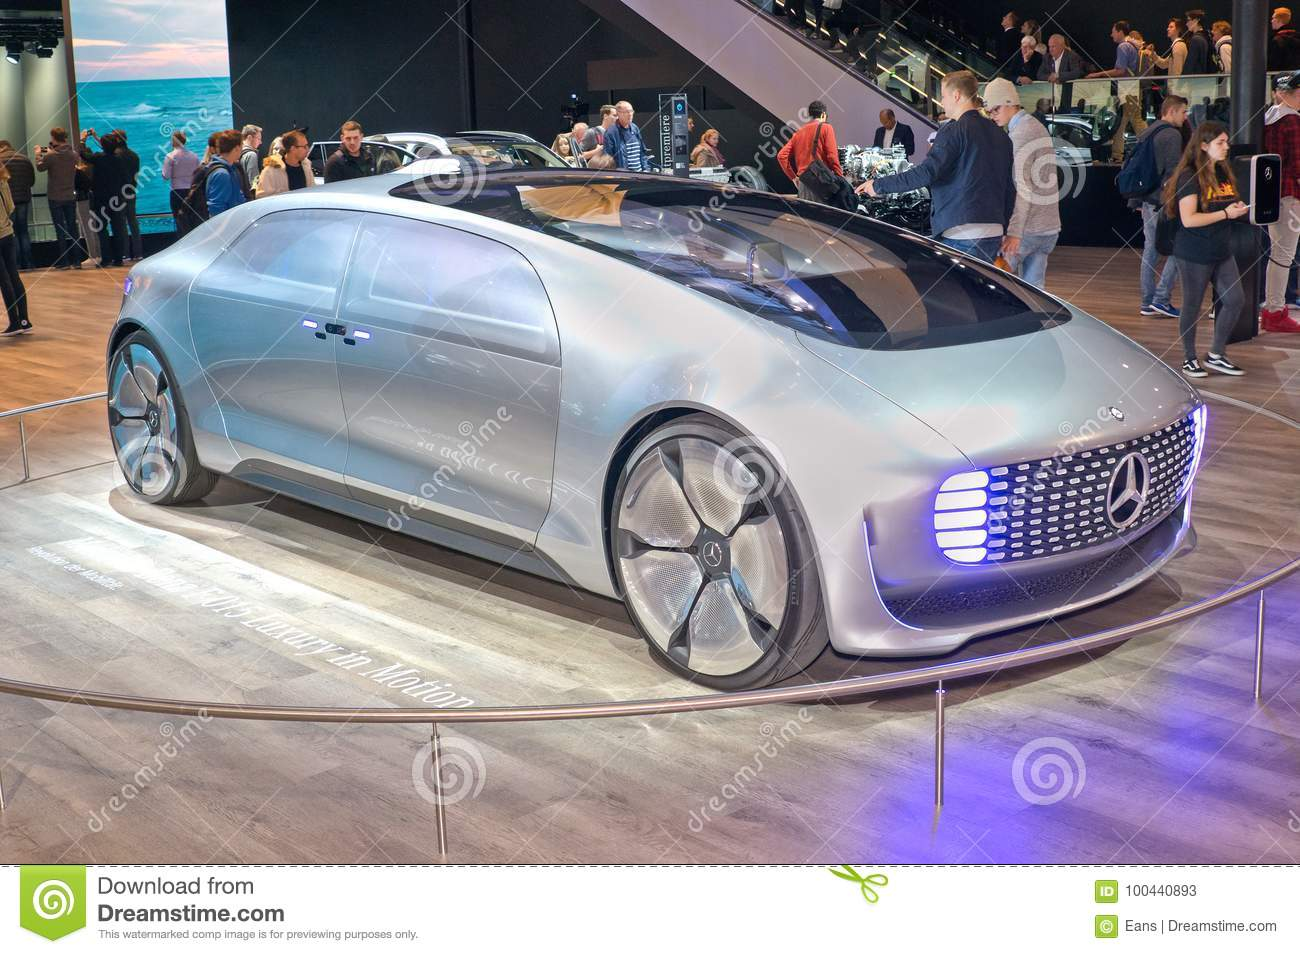 Mercedes Benz F015 Luxury In Motion Concept Car Editorial Stock